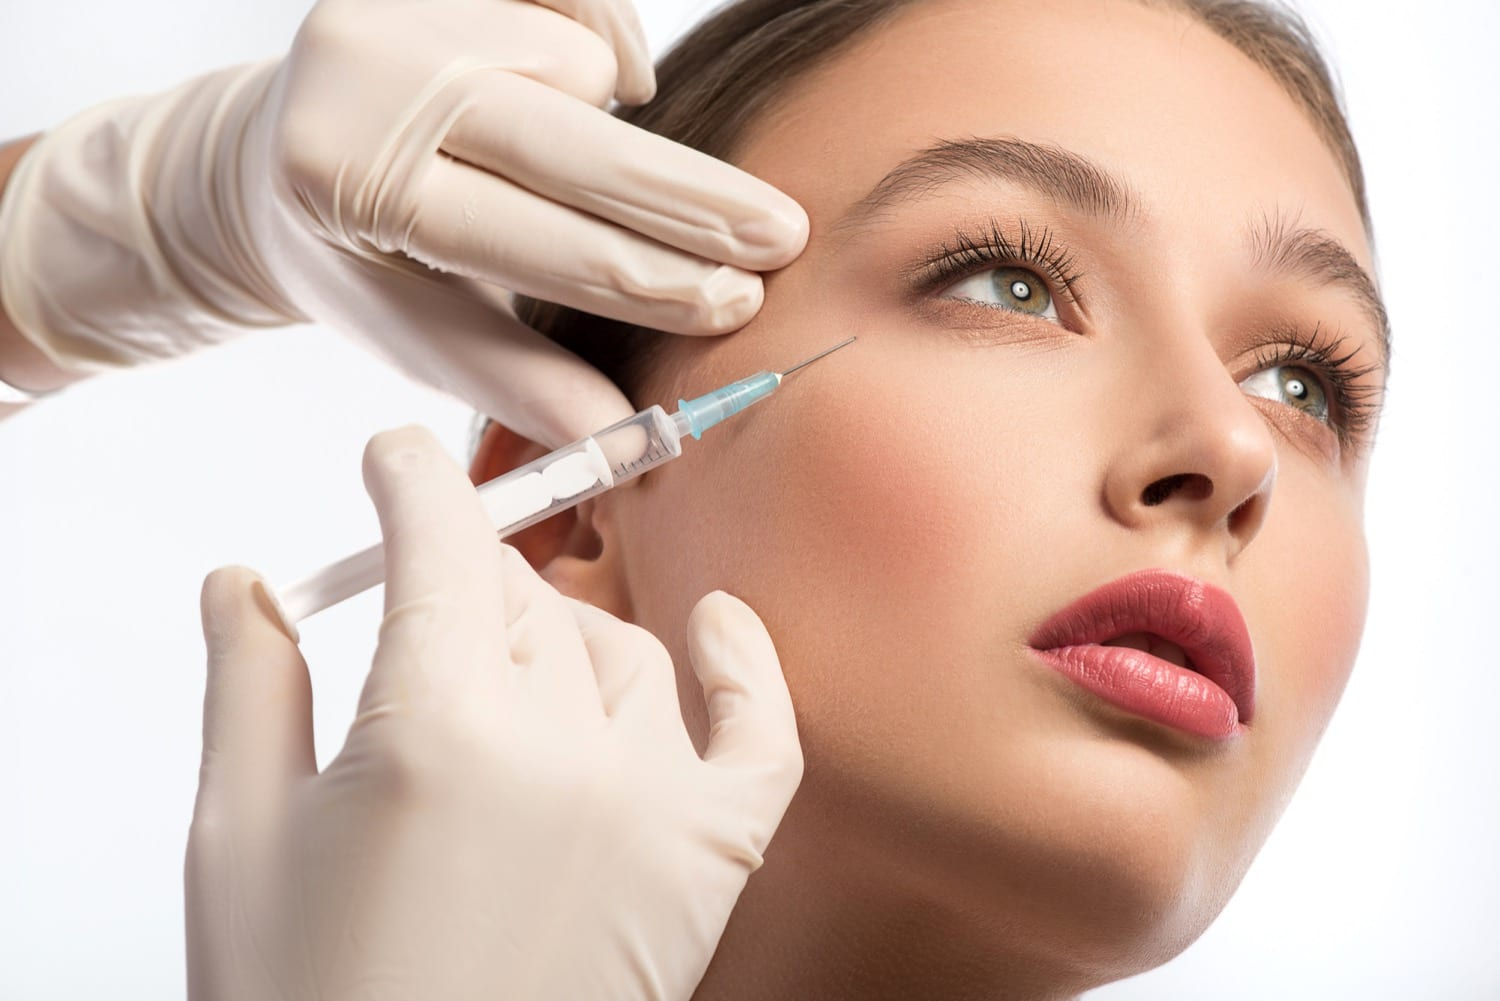 Injectables such as Botox, Juvederm, Voluma, Restylane, Kybella and more are additional services offered by Dr. Max Adler at Max Adler Dermatology in Plano and Dallas, TX.